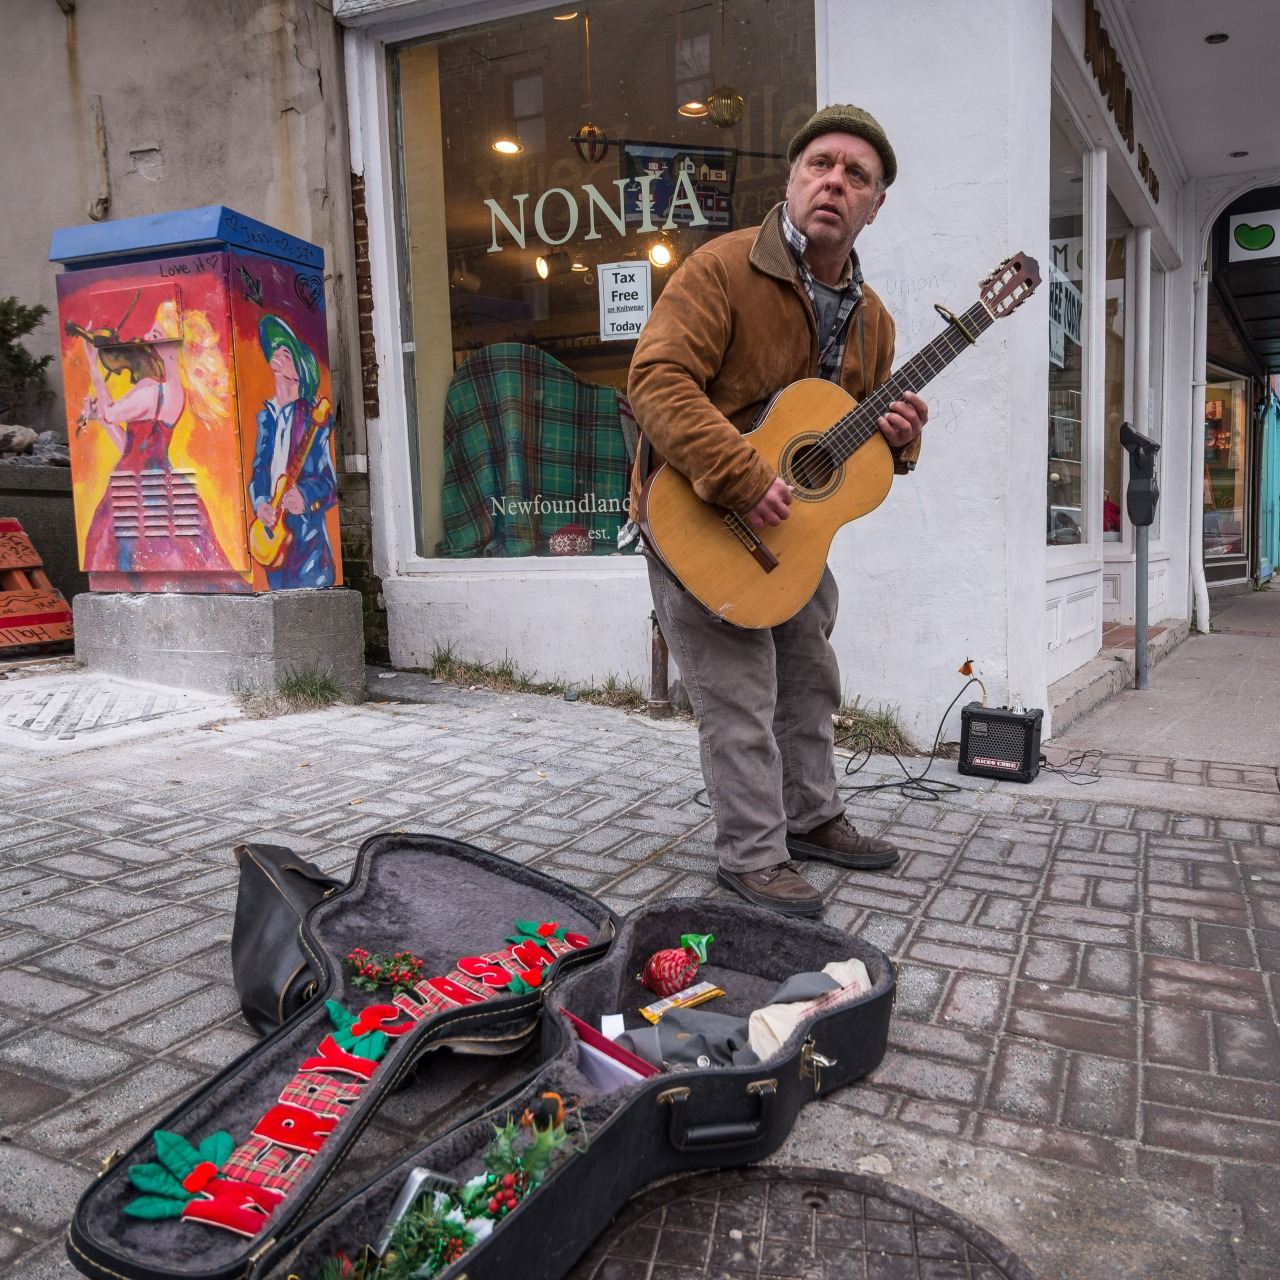 Dec 24 - Stephen Dorian often plays on the corner of Water x George. He had a few tunes going on the eve of the Day of Great Giving.   *DS